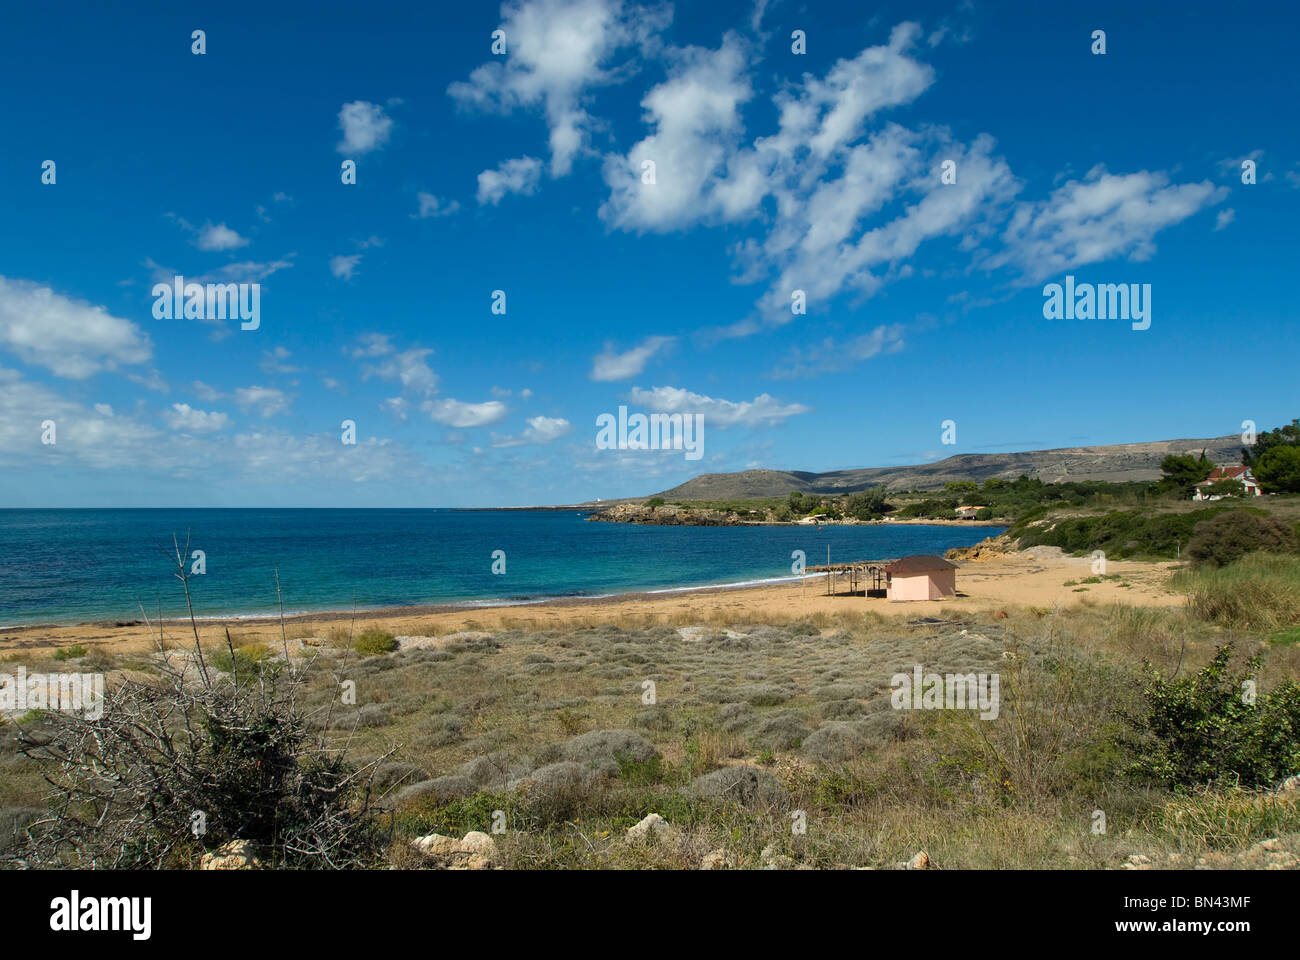 Vrahinari Beach, Kefalonia, Ionian islands, Greece - Stock Image